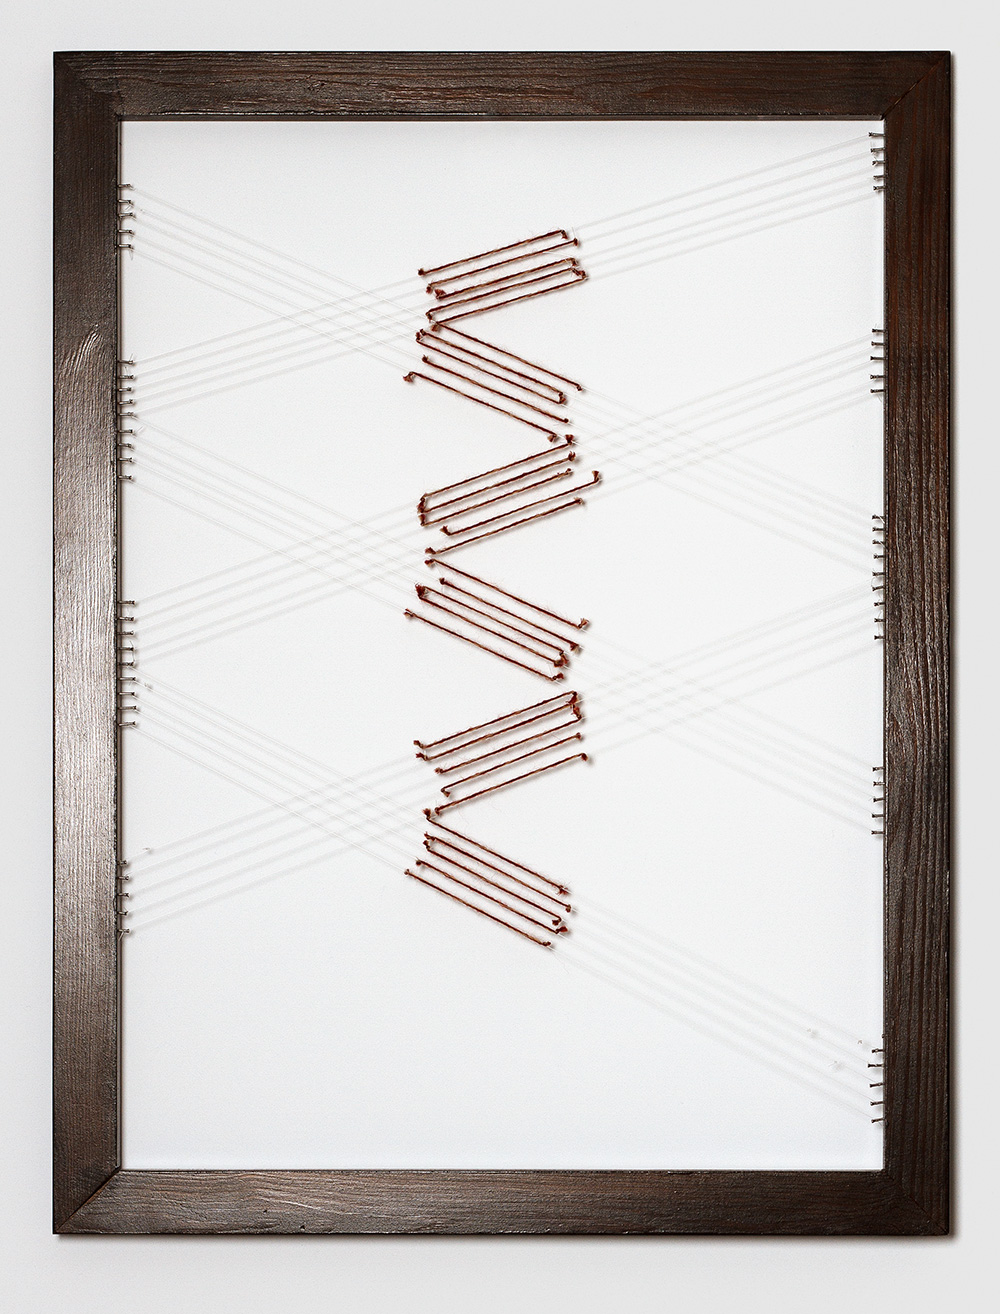 Adia Wahid   Drawing with Thread  II, 2012  Wooden Frame, Yarn, Plastic Thread, Nails  80cm x 60cm